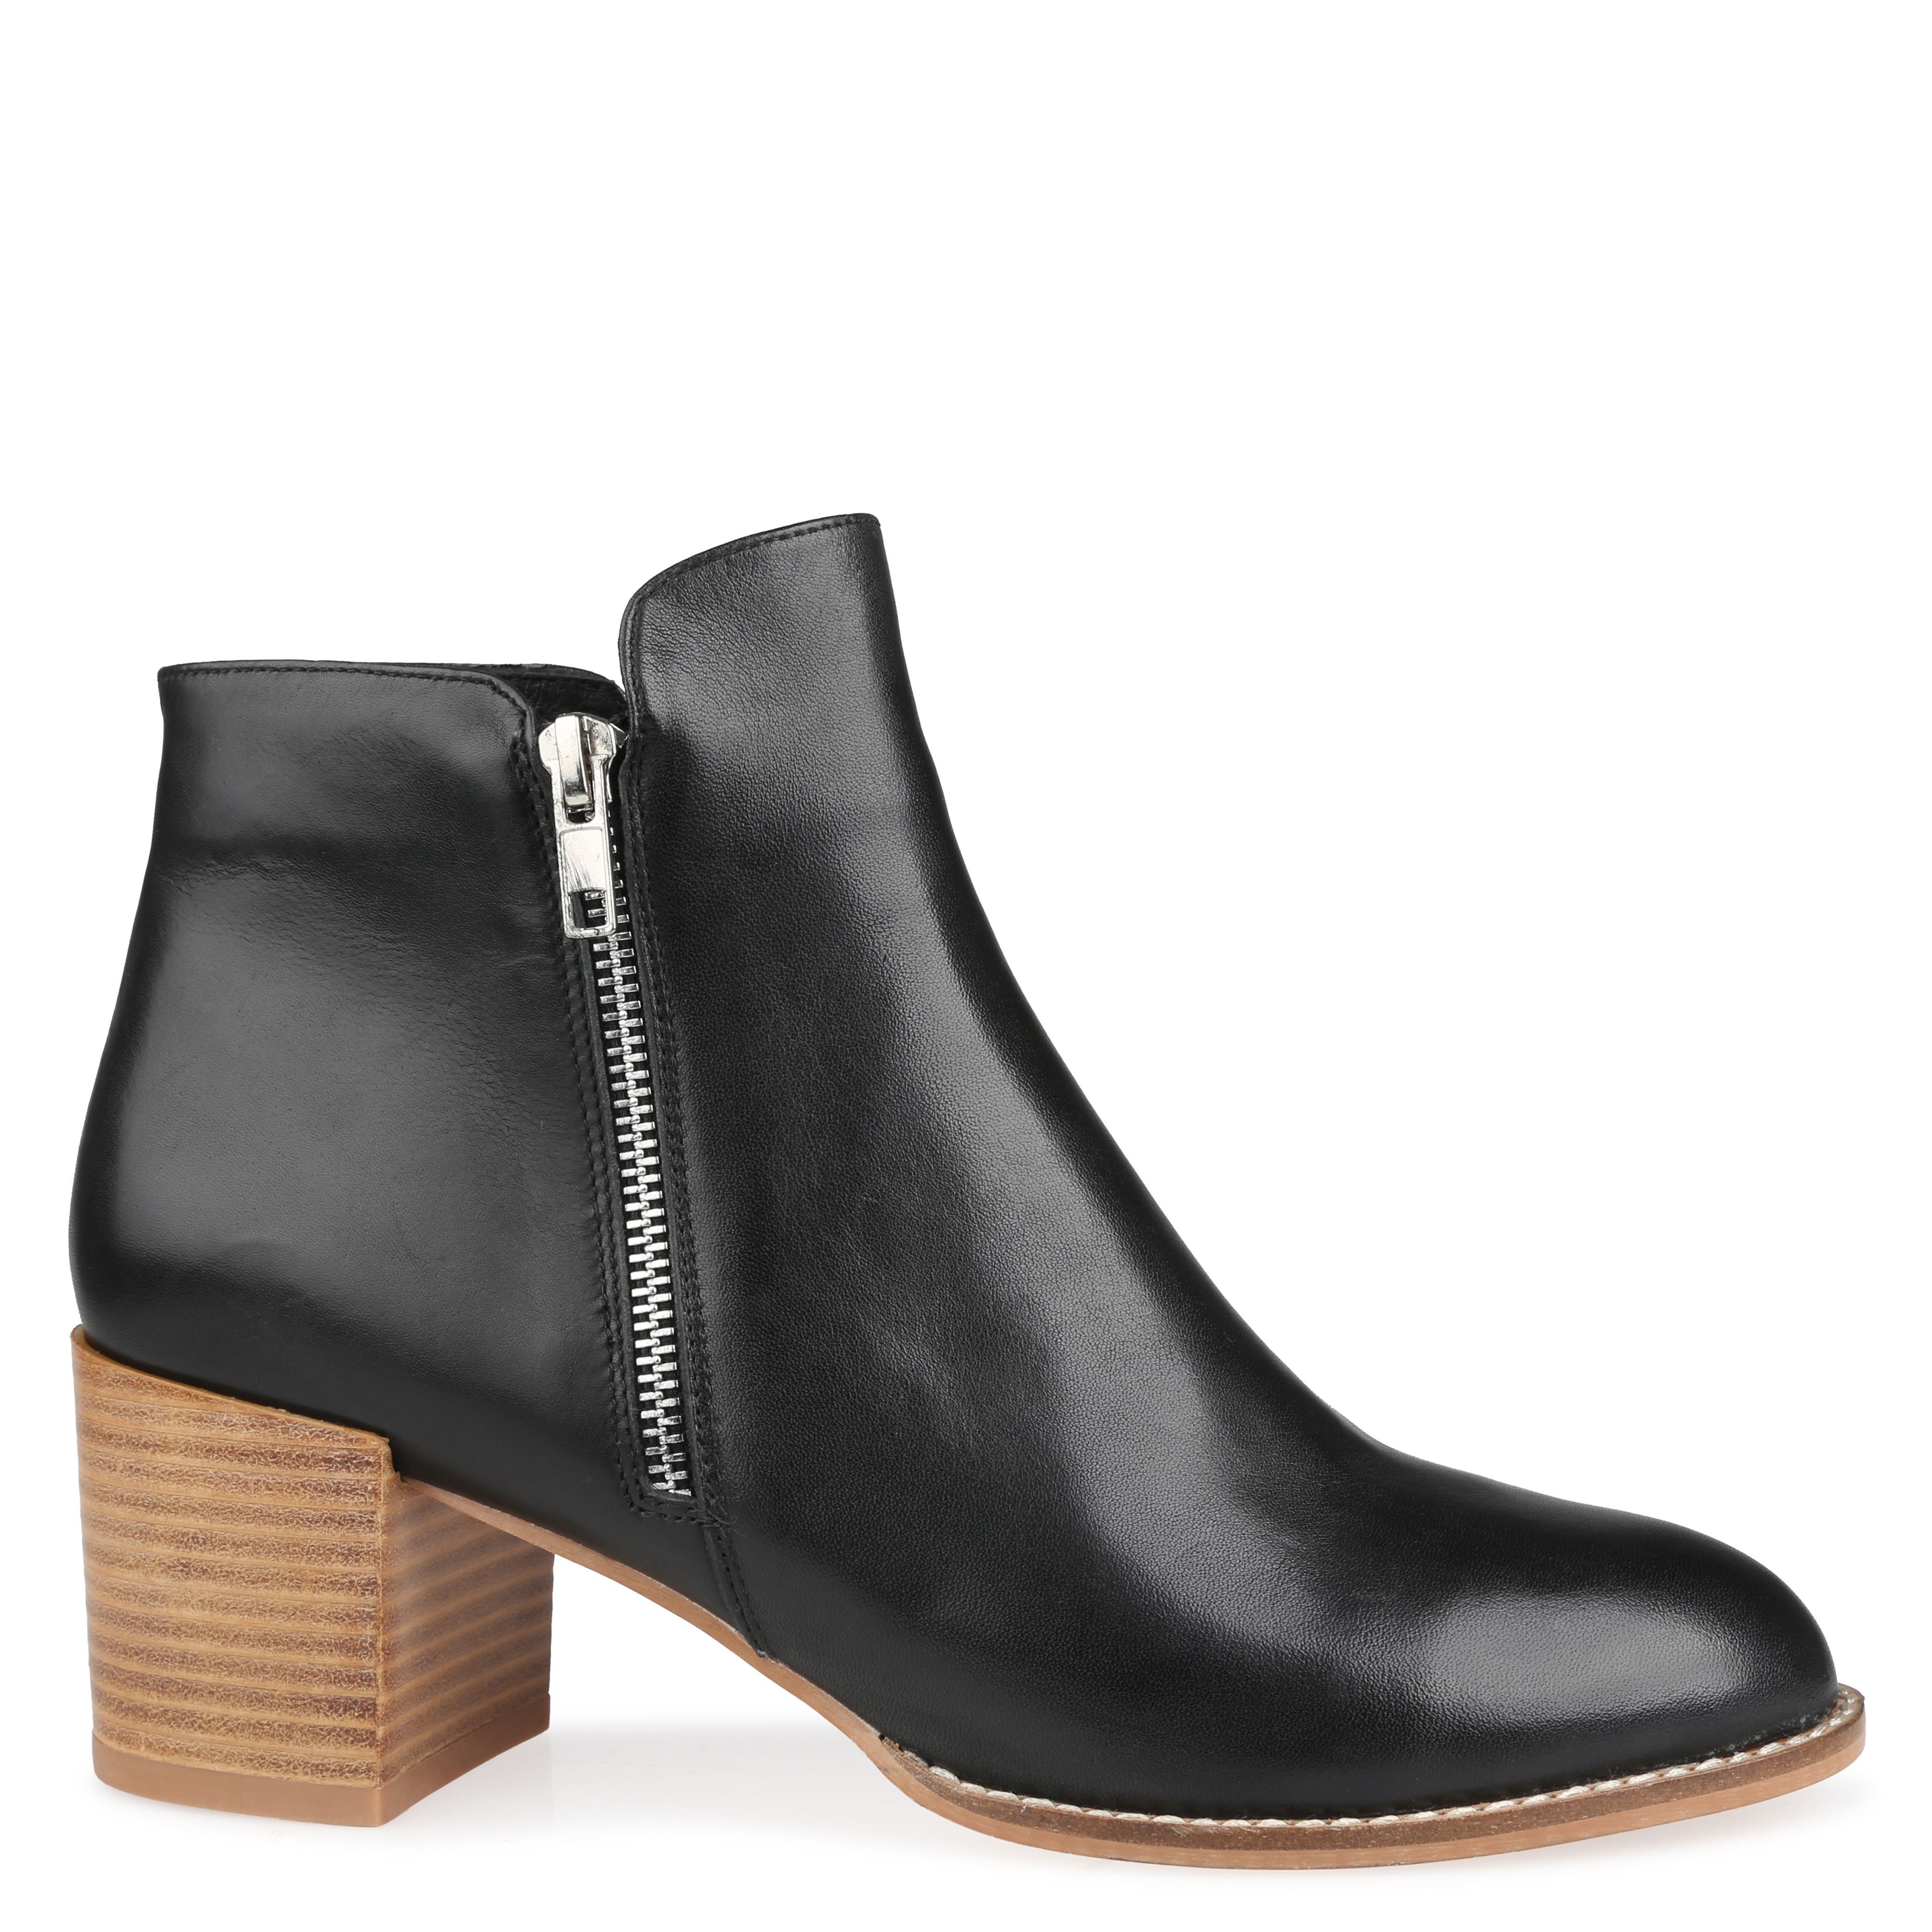 Shoe Connection Miss Sofie Canon Black Leather Ankle Boot 269 99 Https Www Shoeconnection Co Nz Womens Boots Ankle Boots Miss Sofie Canon Leather Ankle